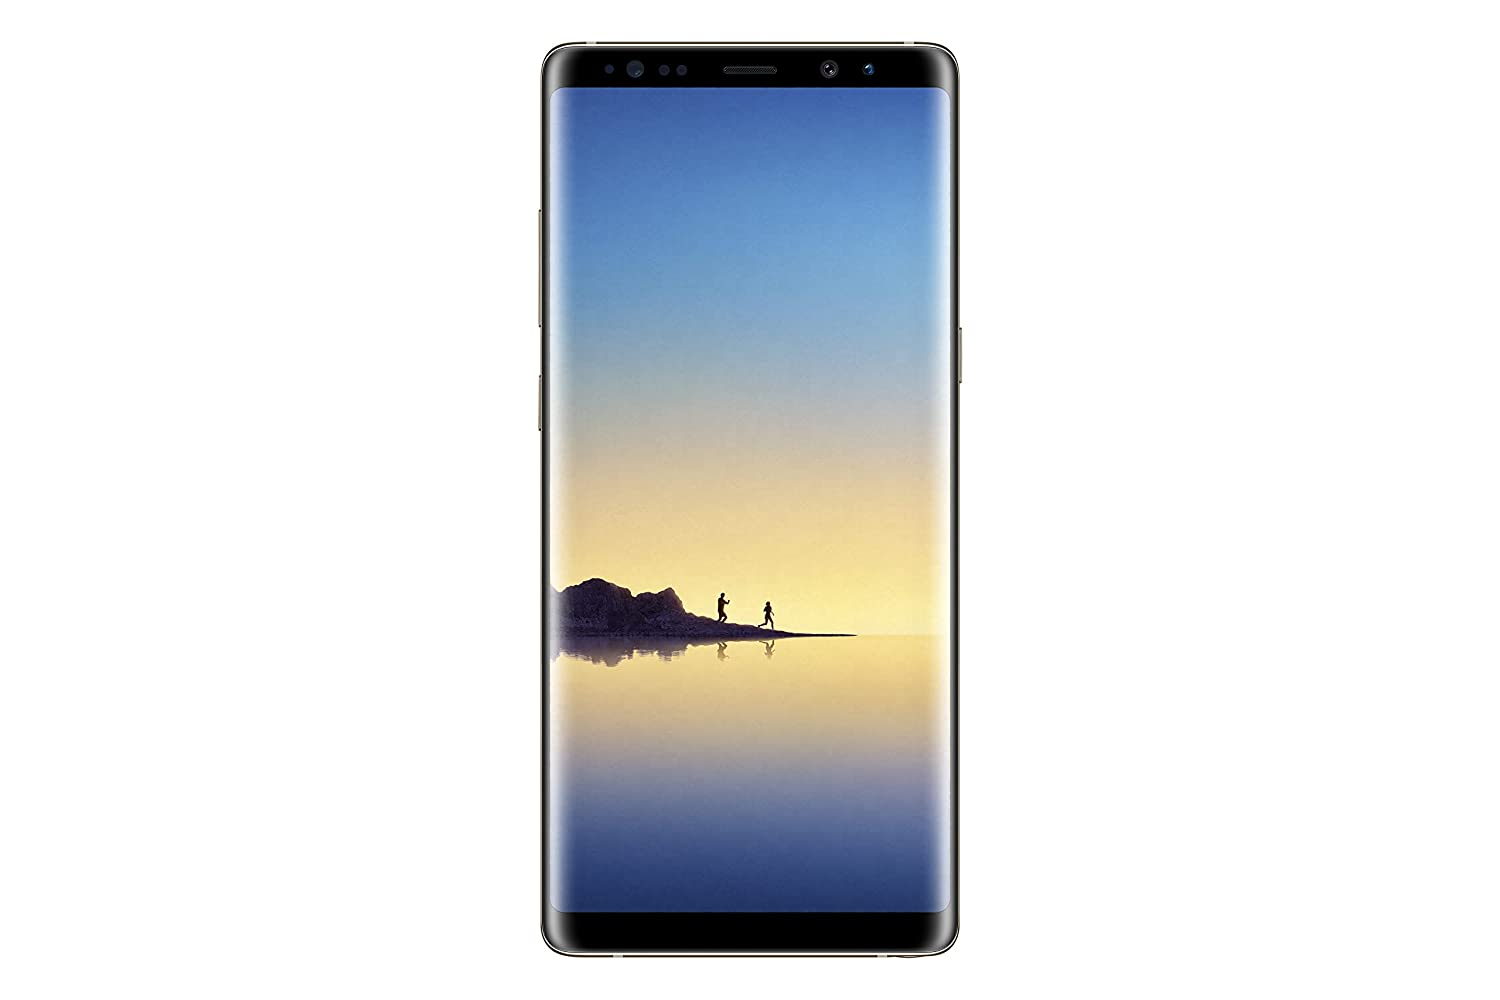 Samsung Galaxy S8 (Plus): SMS-Empfang macht Probleme